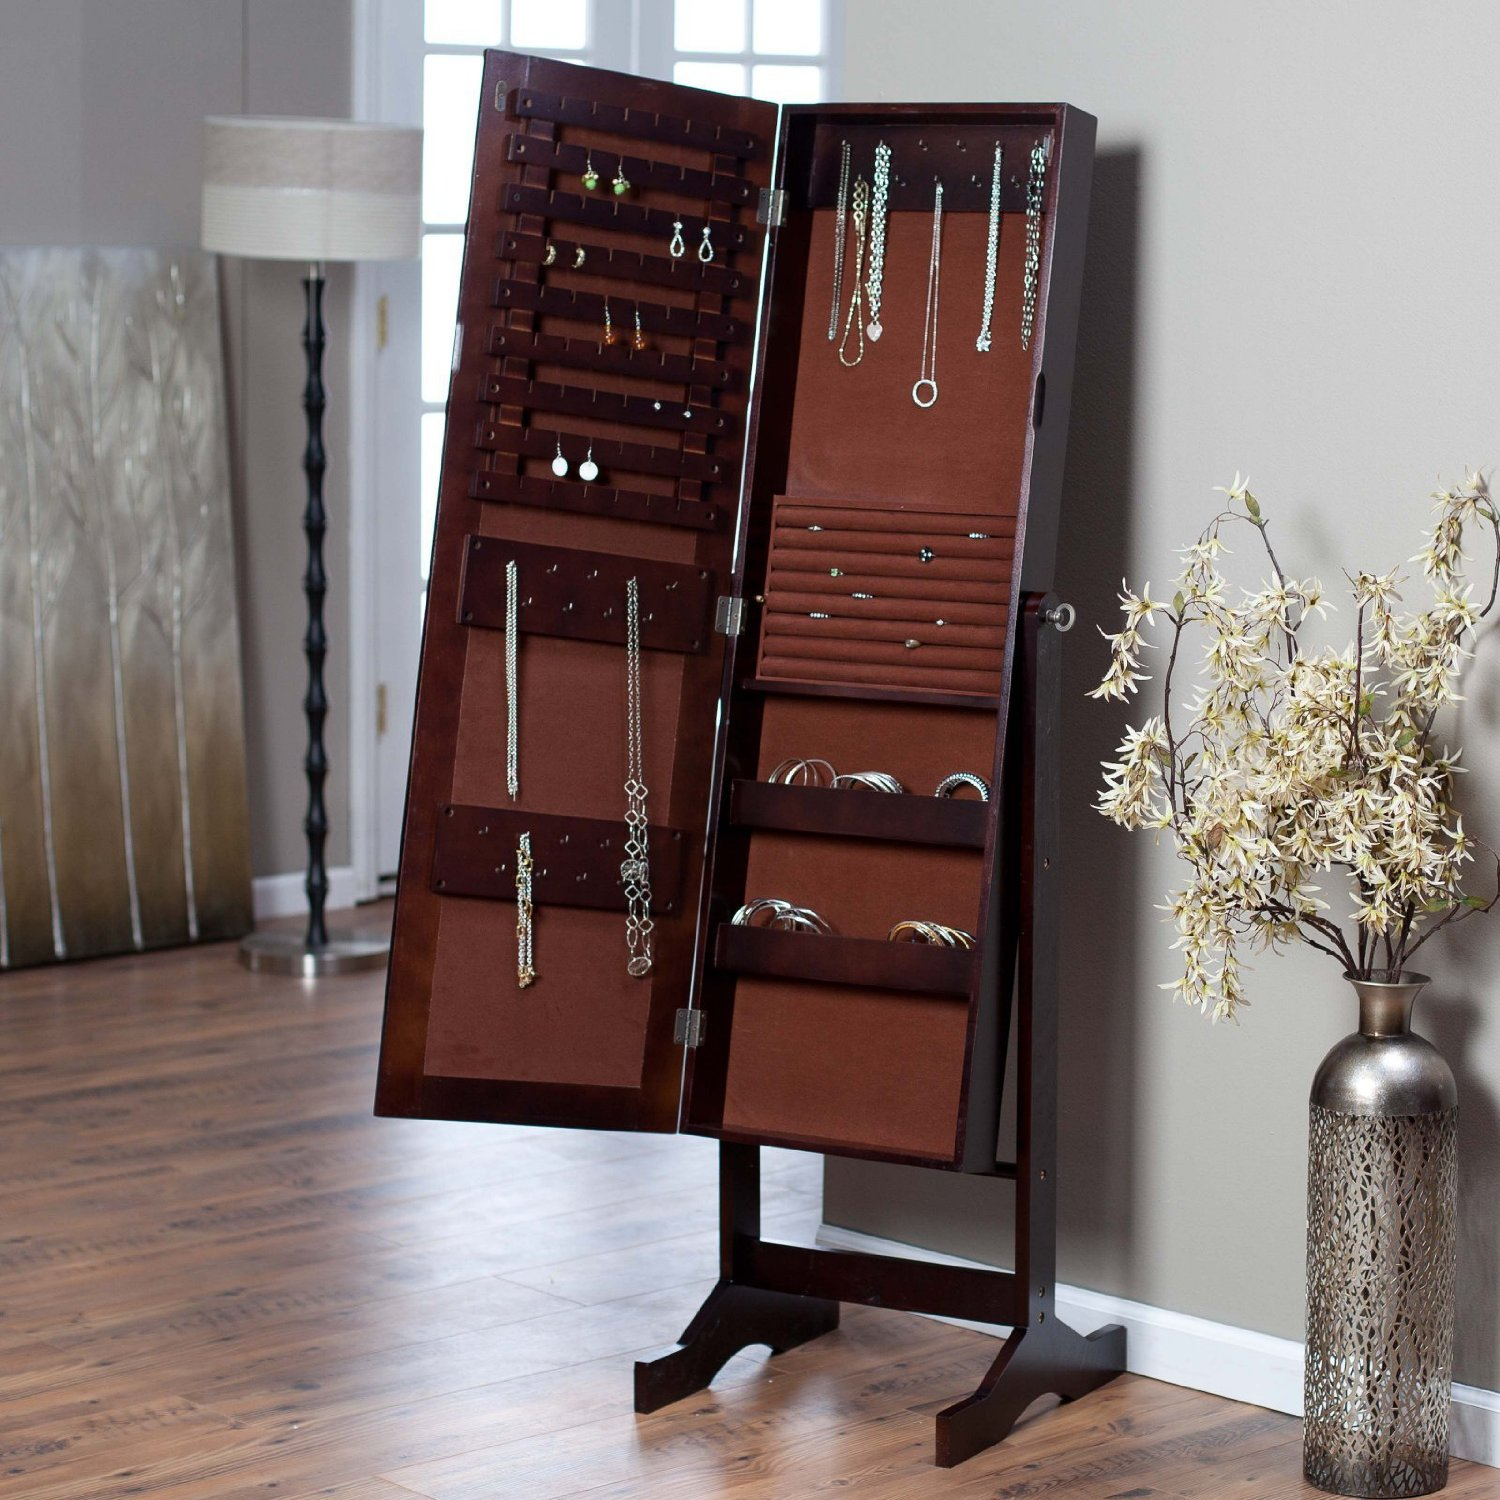 Charming Wooden Standing Mirror Jewelry Armoire In Espresso On Wooden Floor Matched With Gainsboro Color Wall For Living Room Decor Ideas